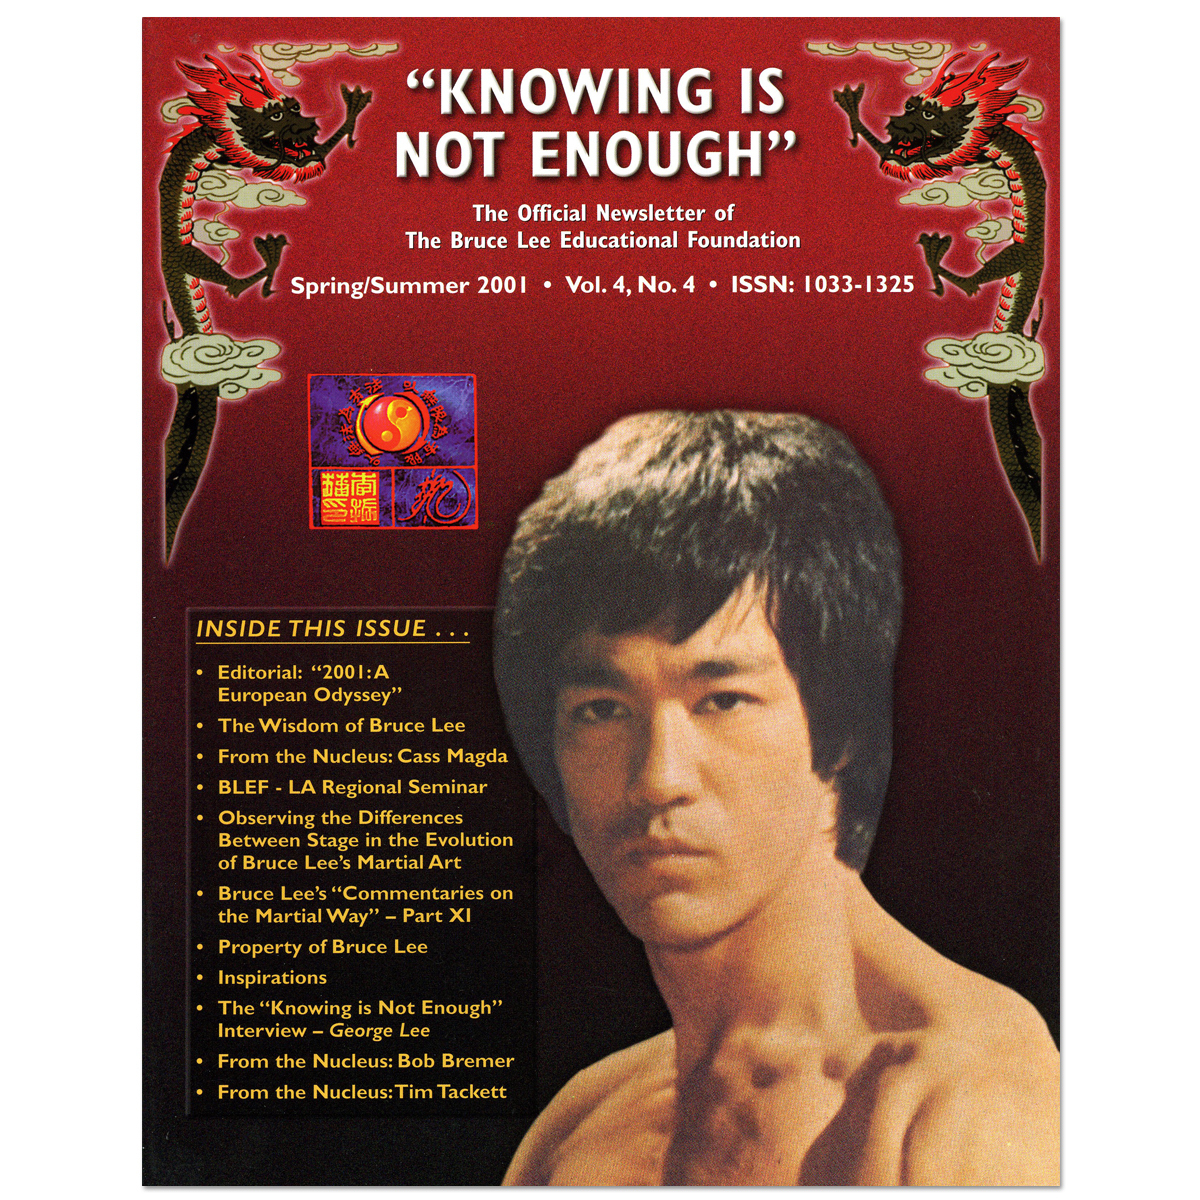 Bruce Lee - Knowing Is Not Enough Newsletter Spring/Summer 2001